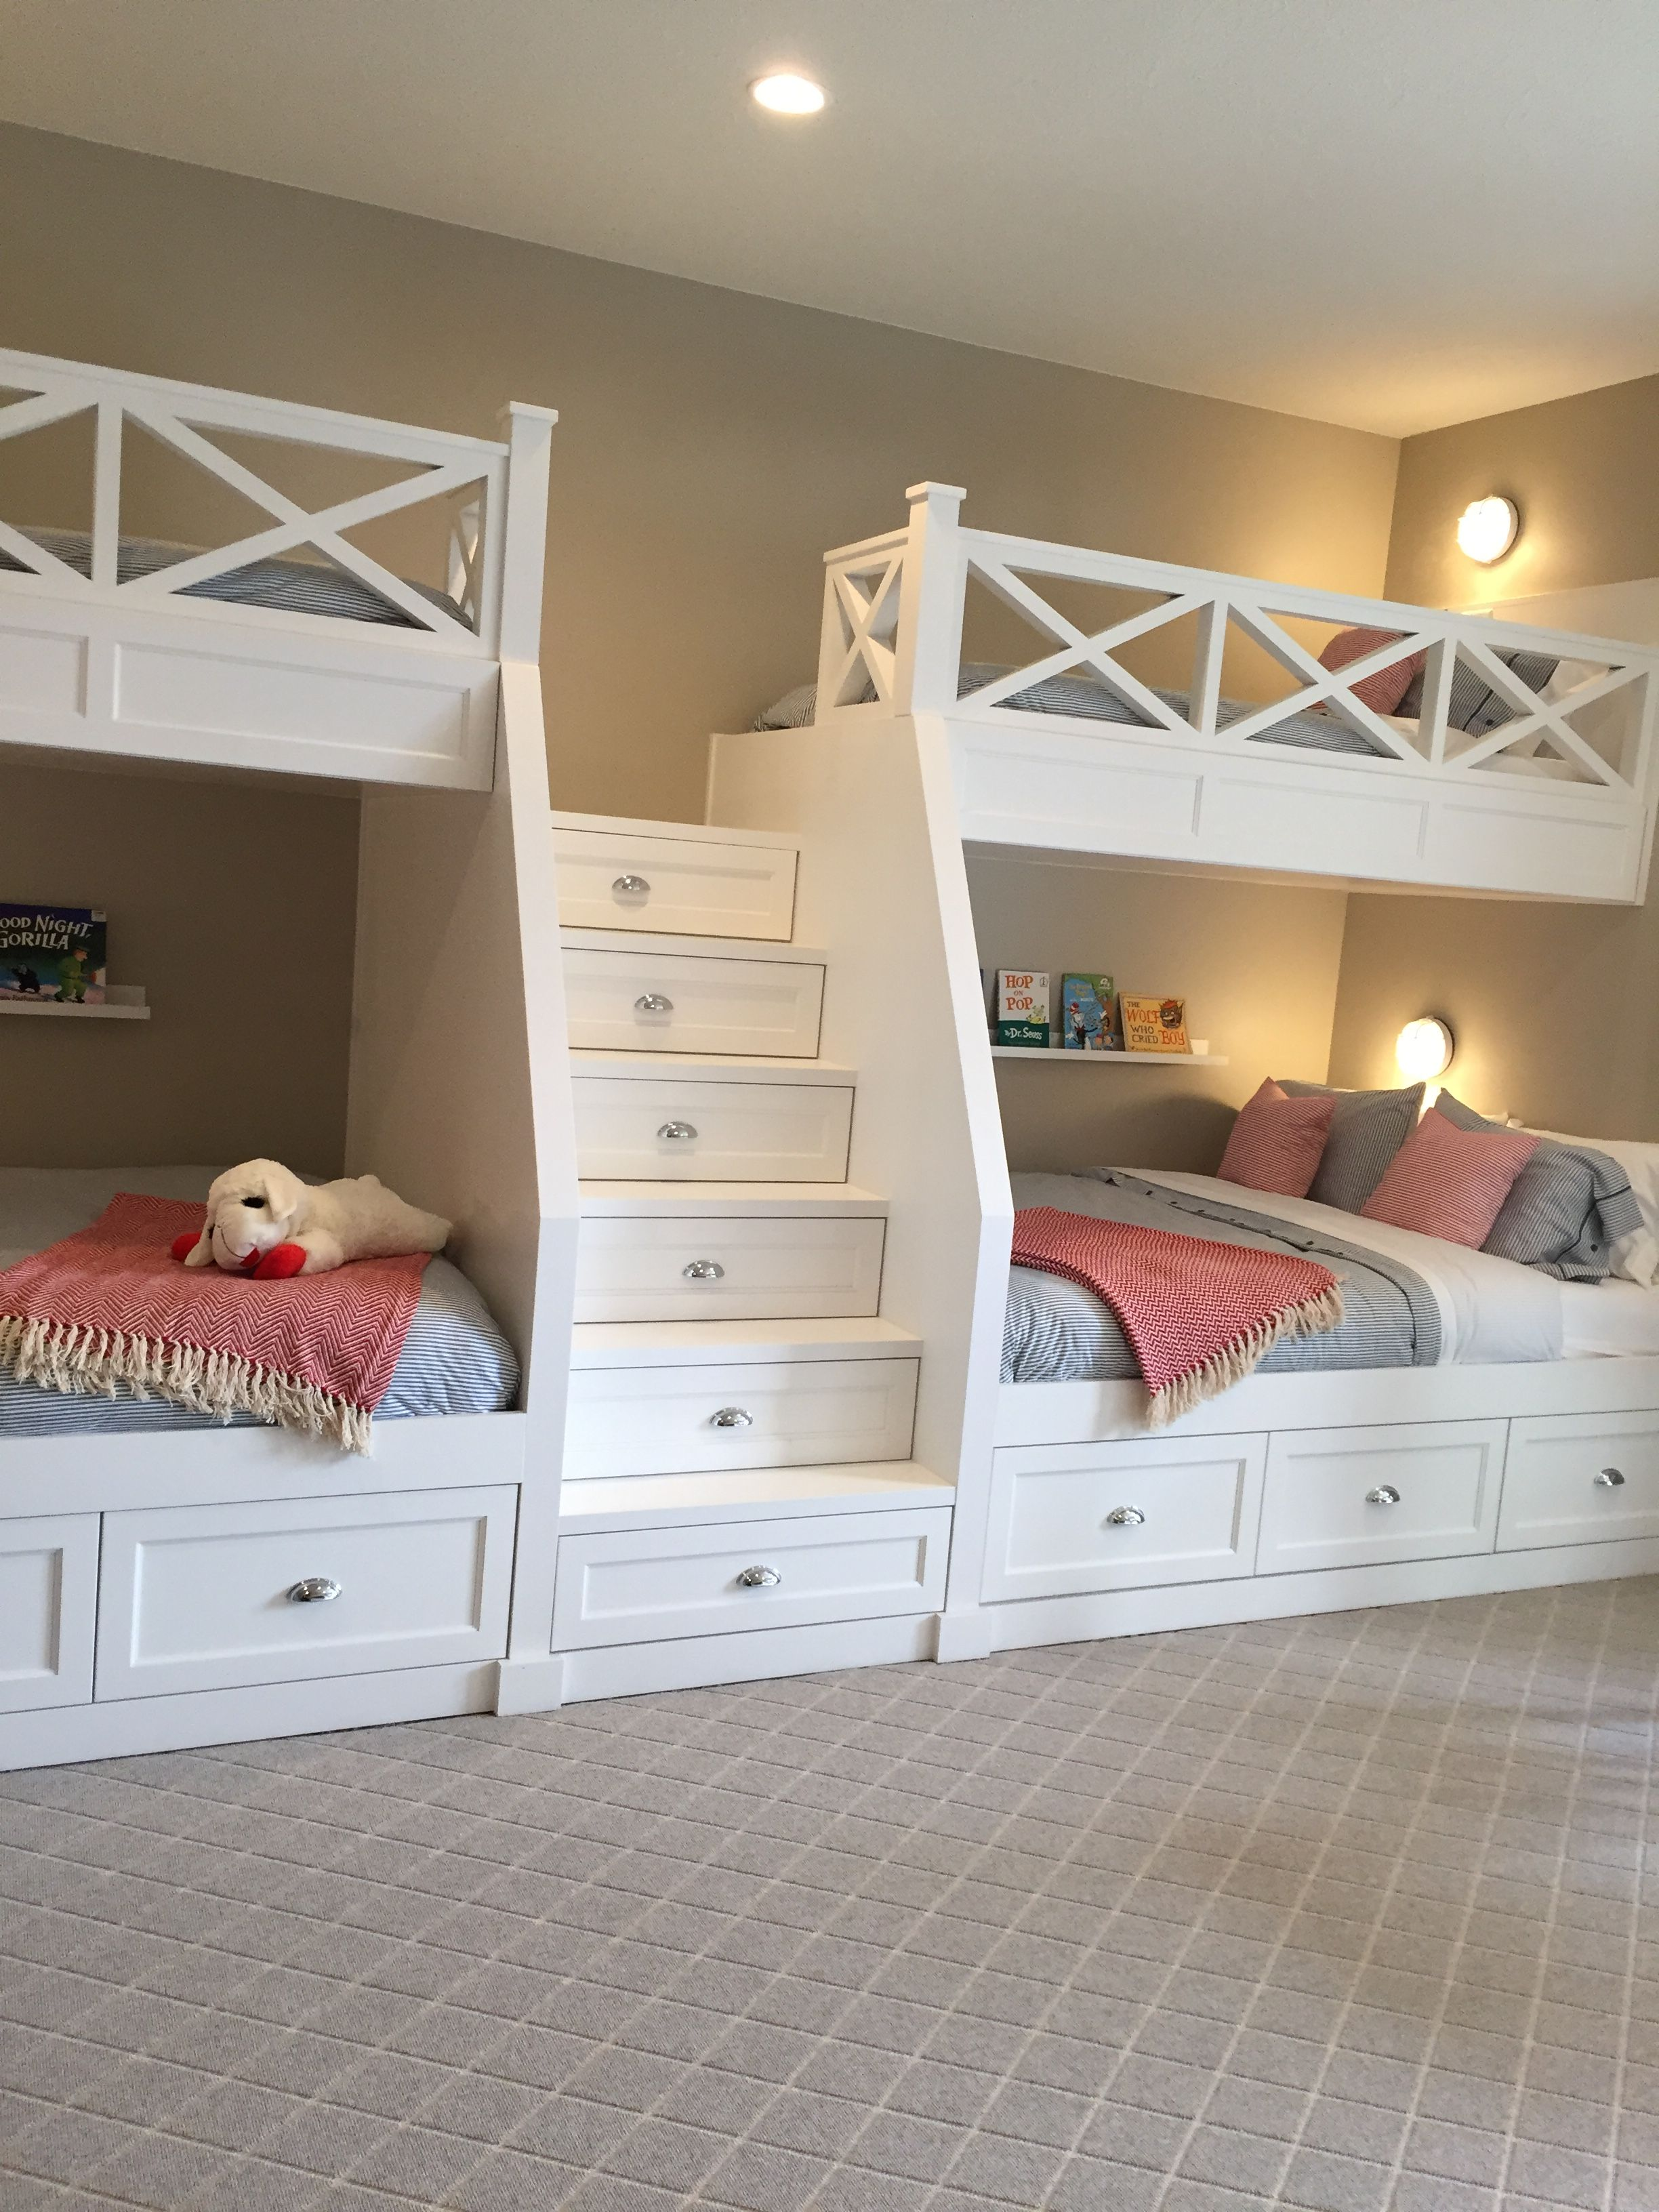 House 4 Bed For Girls Room Bunk Bed Designs Bunk Bed Rooms